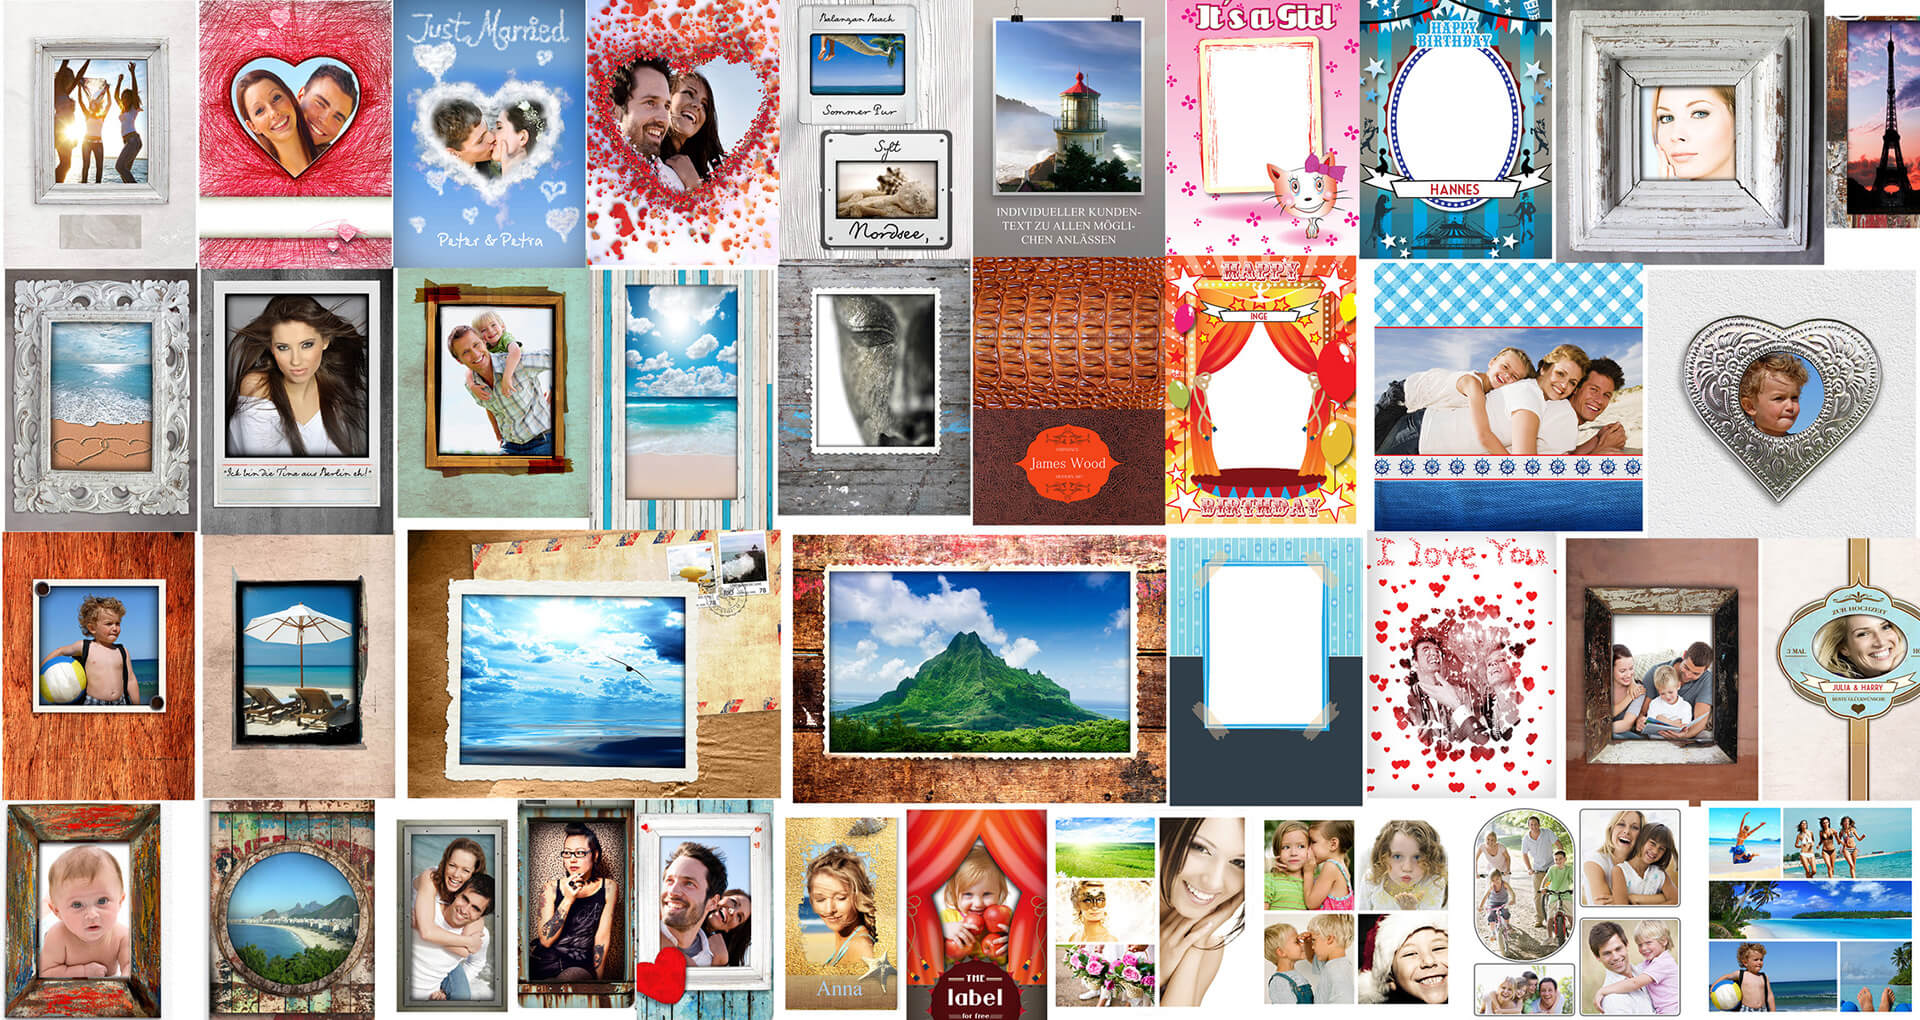 webtoprint fotobook variable graphics walltattoo popart calendar smartphone case greeting card  17 3